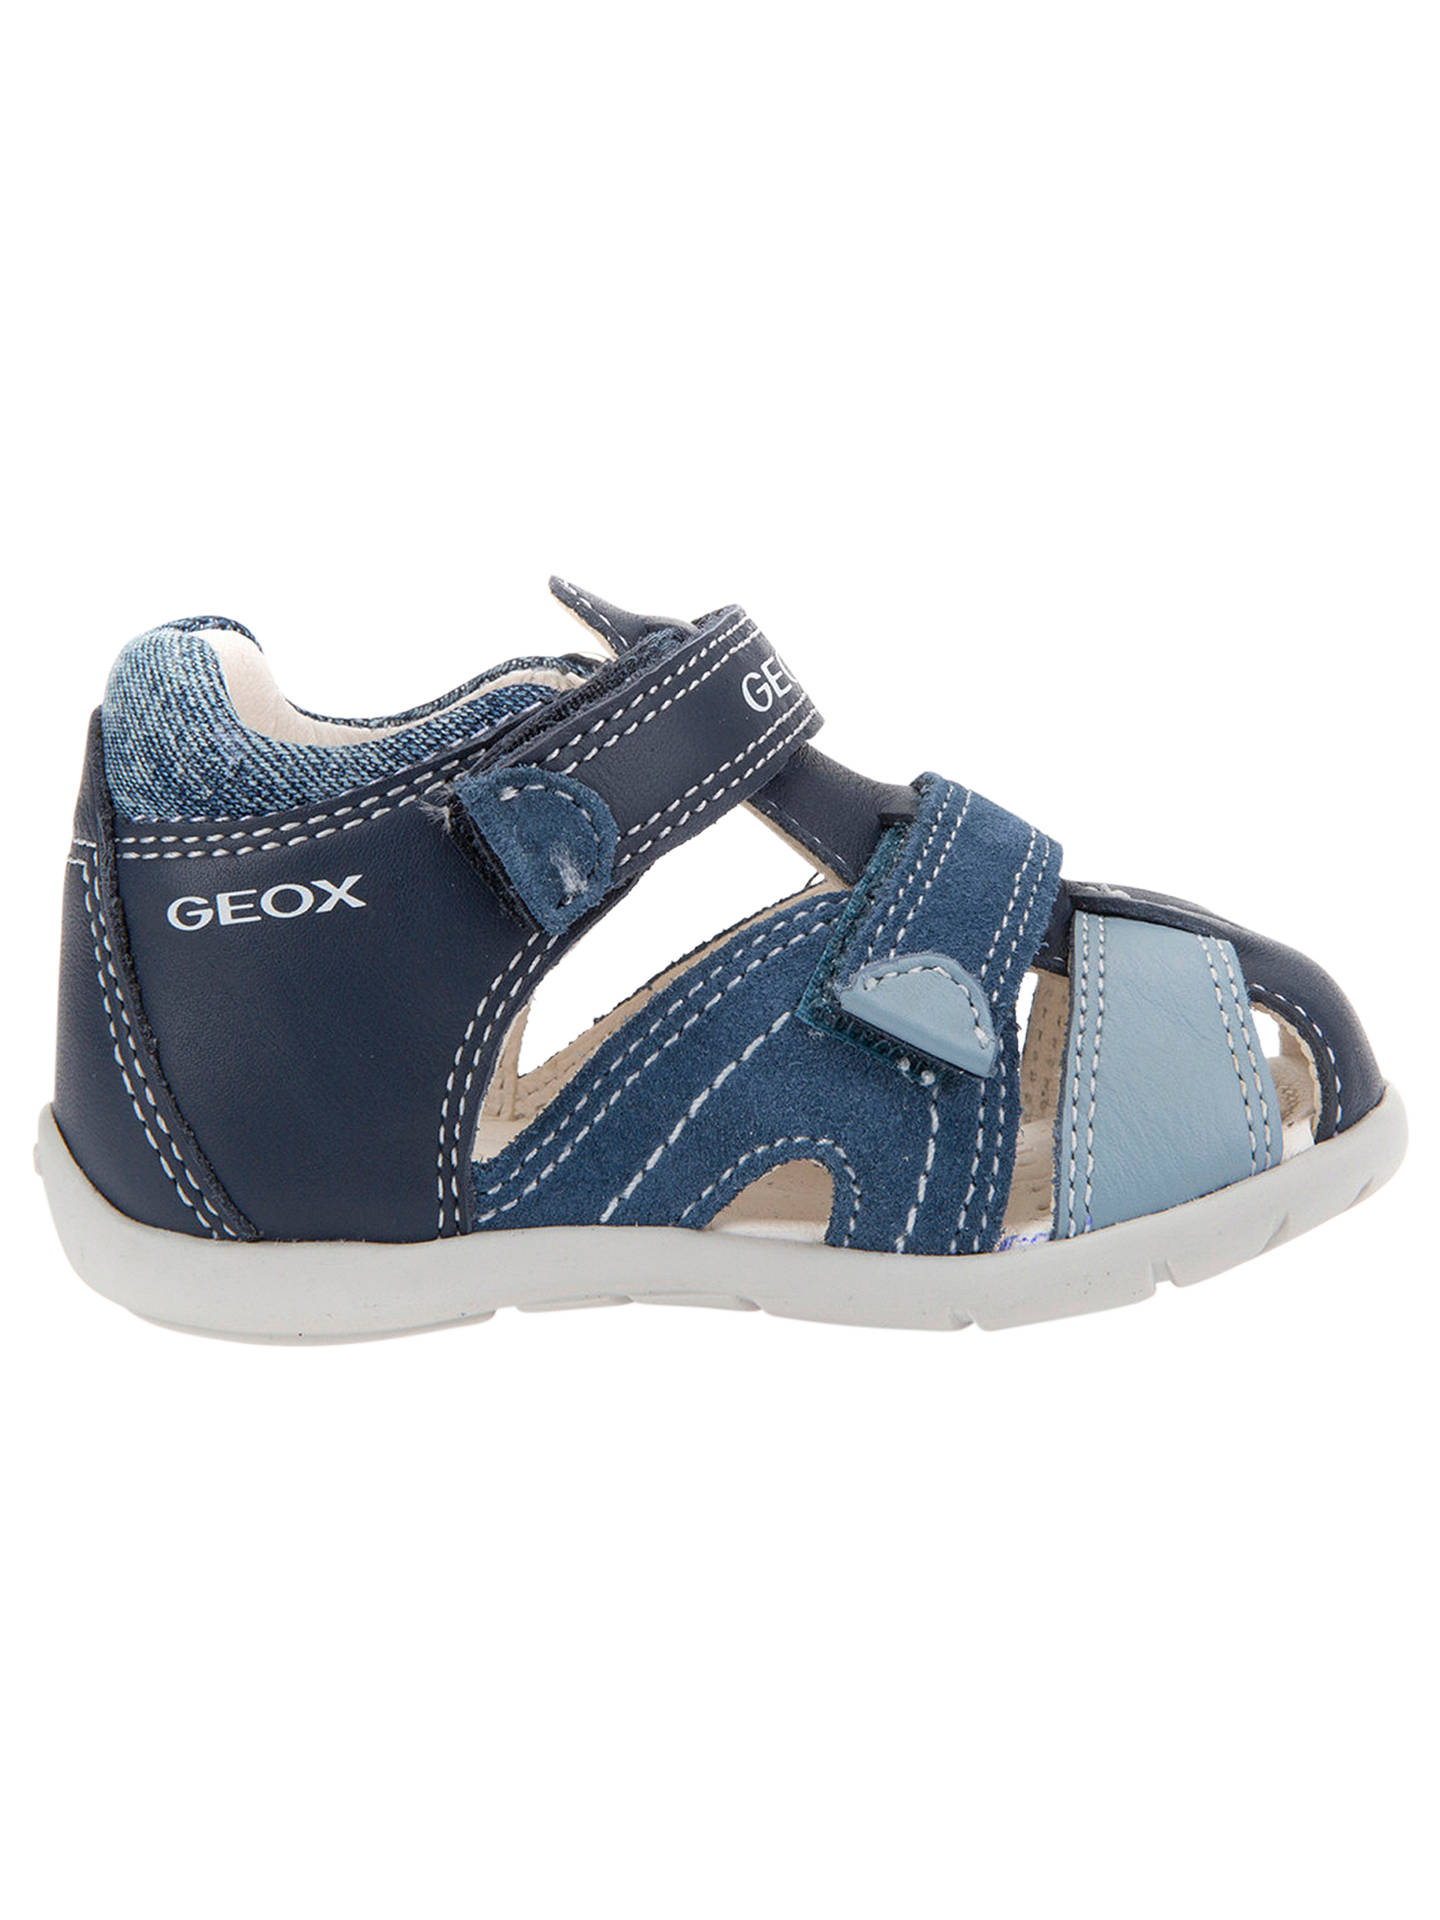 20857a8ac07e1 Buy Geox Children's B Kaytan Shoes, Navy/Grey, 18 Online at johnlewis.